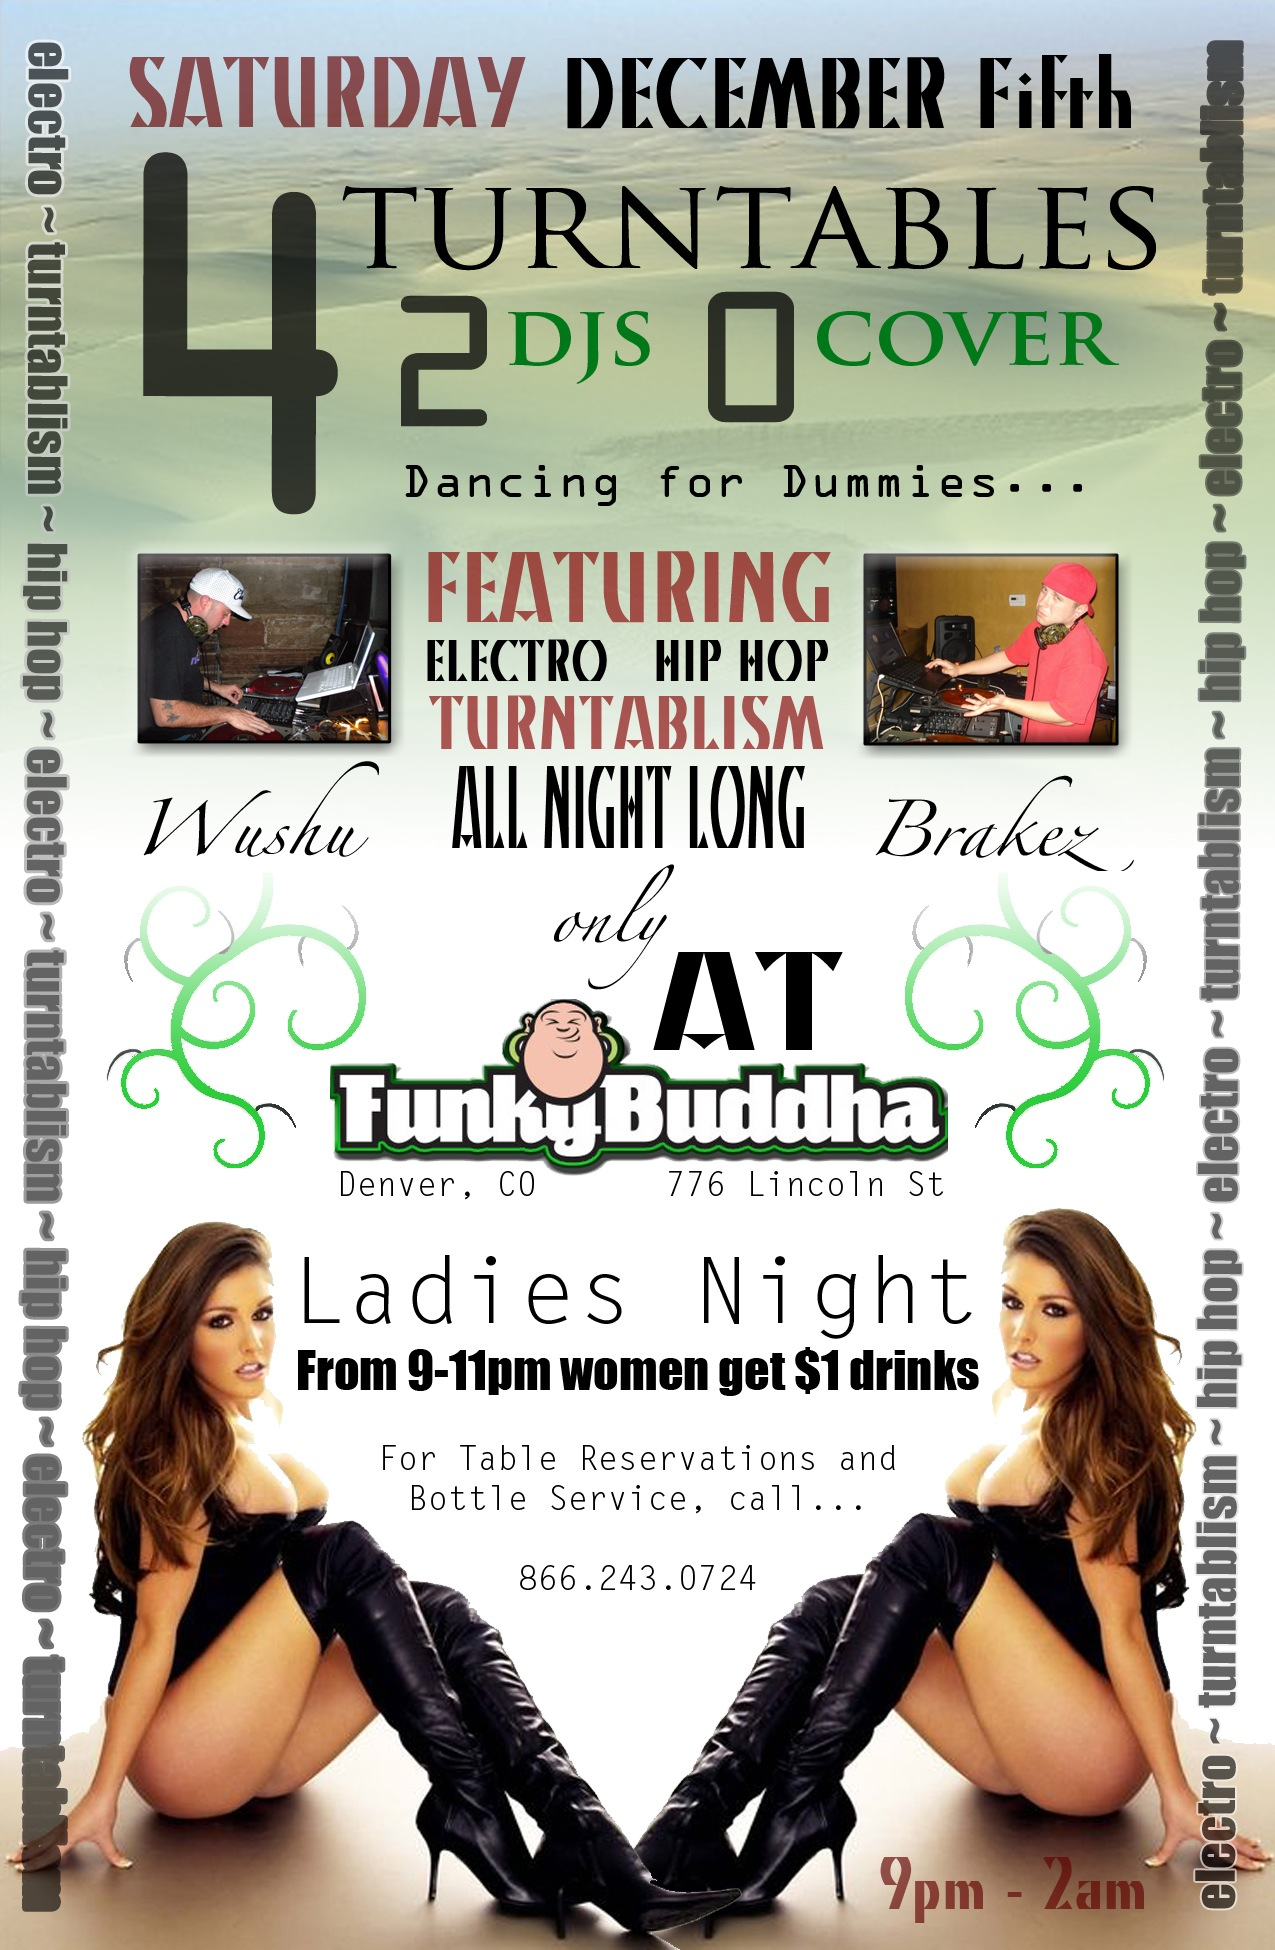 Funky Buddha - Denver, CO